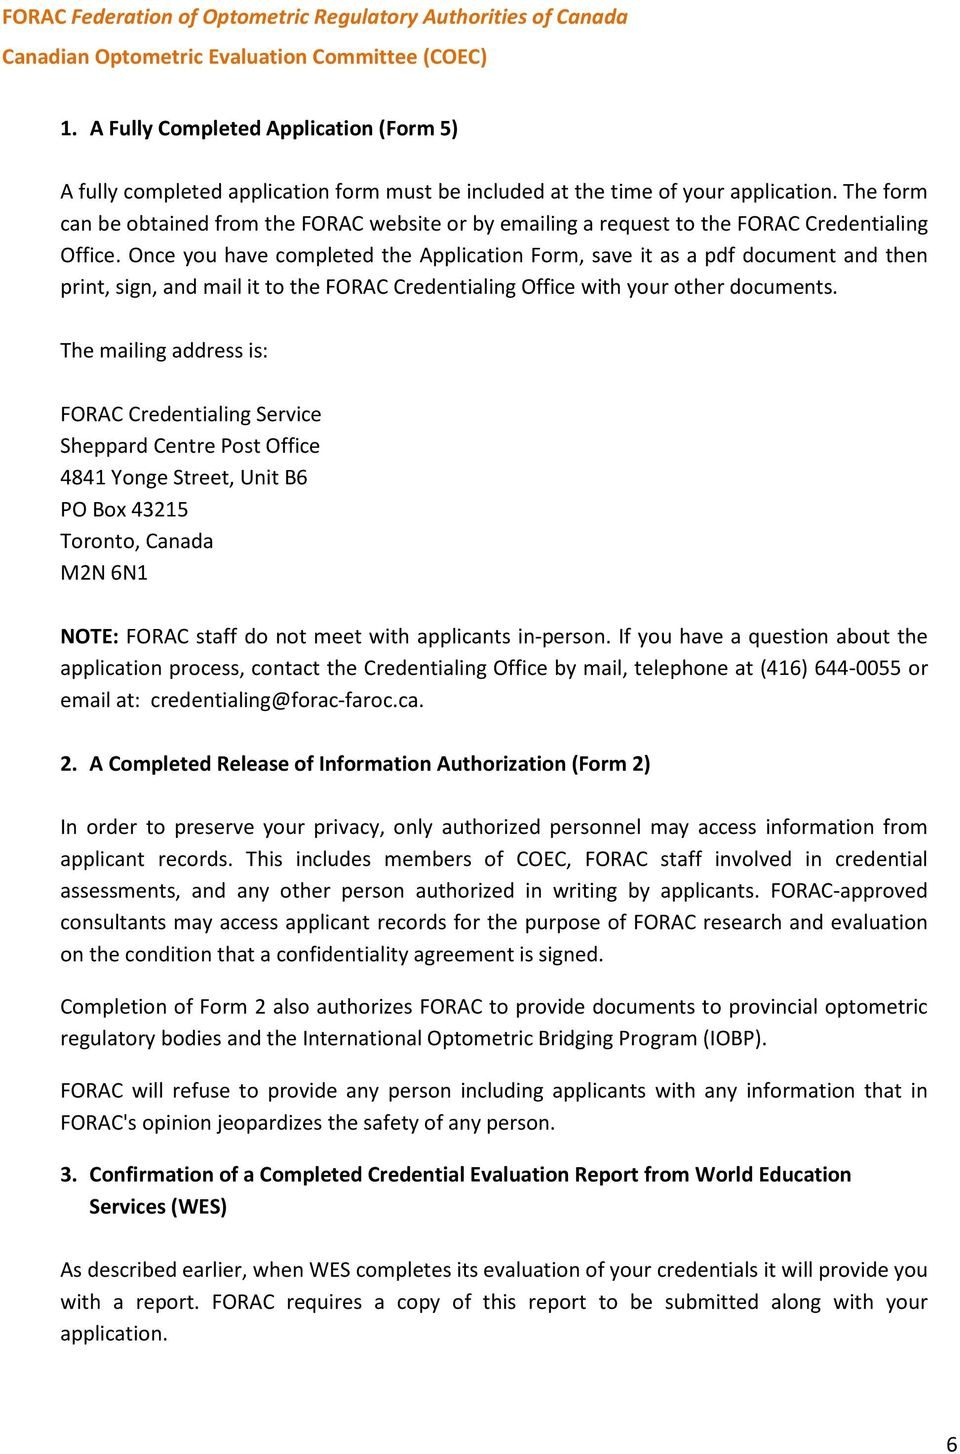 Once you have completed the Application Form, save it as a pdf document and then print, sign, and mail it to the FORAC Credentialing Office with your other documents.